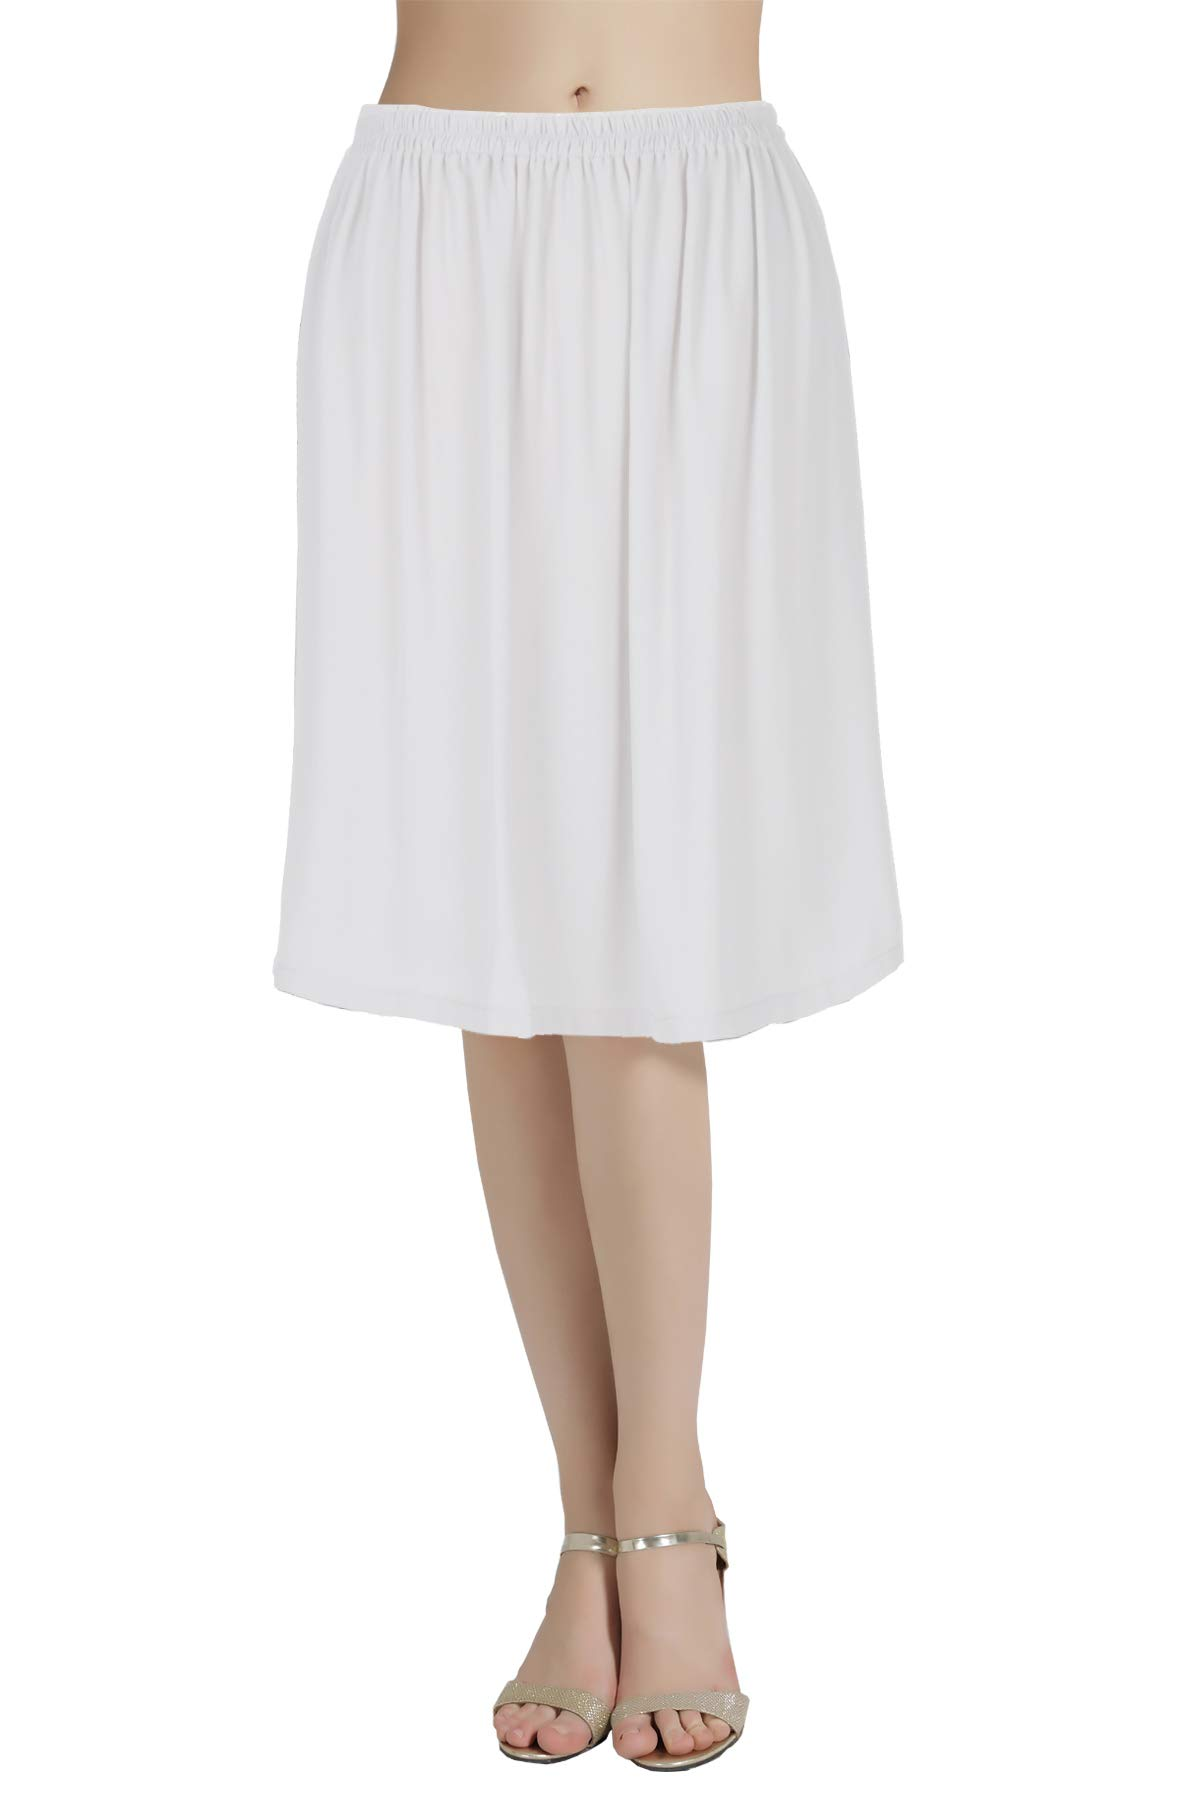 BEAUTELICATE Half Slip Chiffon Underskirt Snip Anti-Static-It Adjustable Waist in 4 Different Length